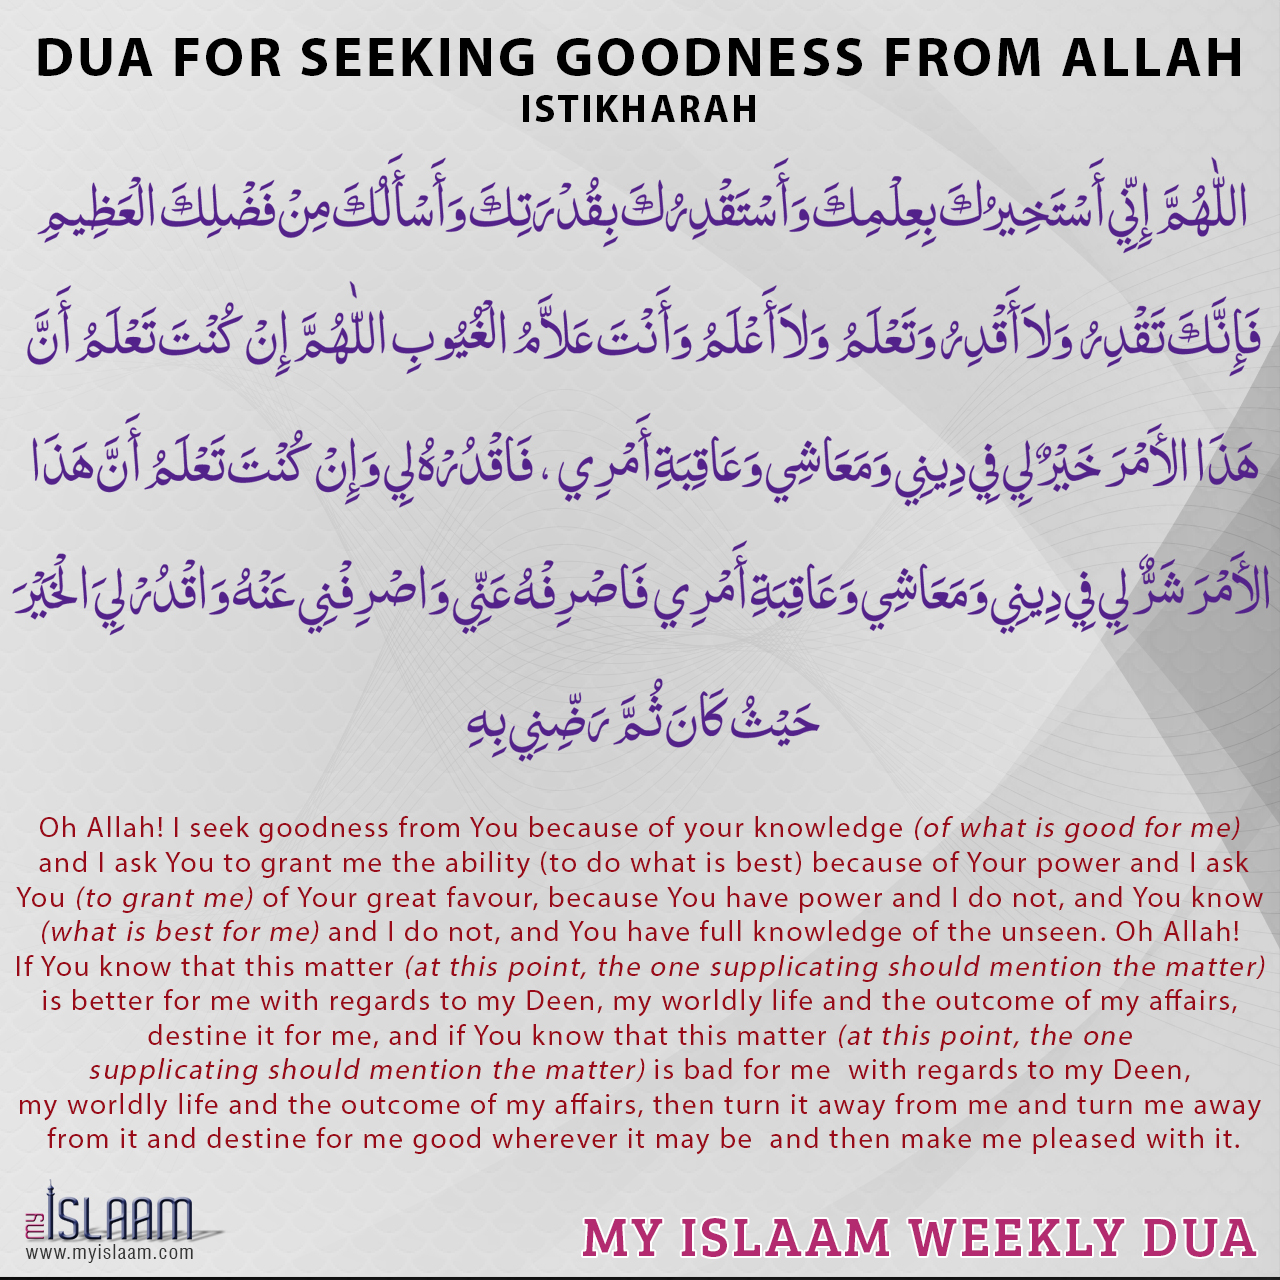 Dua for seeking goodness from allah istikharah altavistaventures Image collections